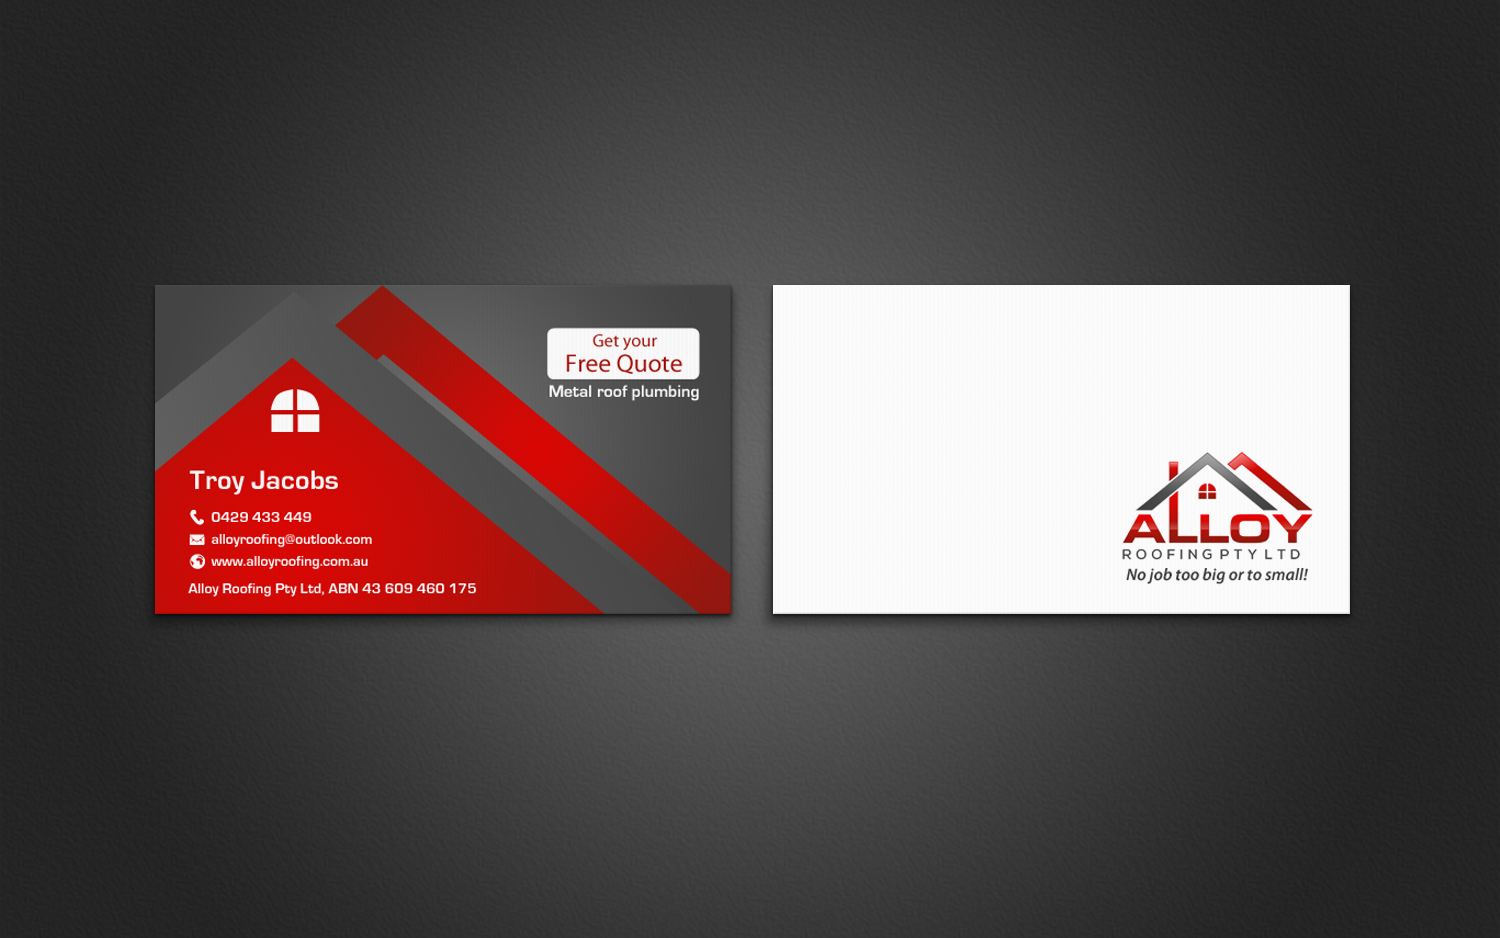 Business Card Design By Chandrayaan Creative For Alloy Roofing Pty Ltd 8486070